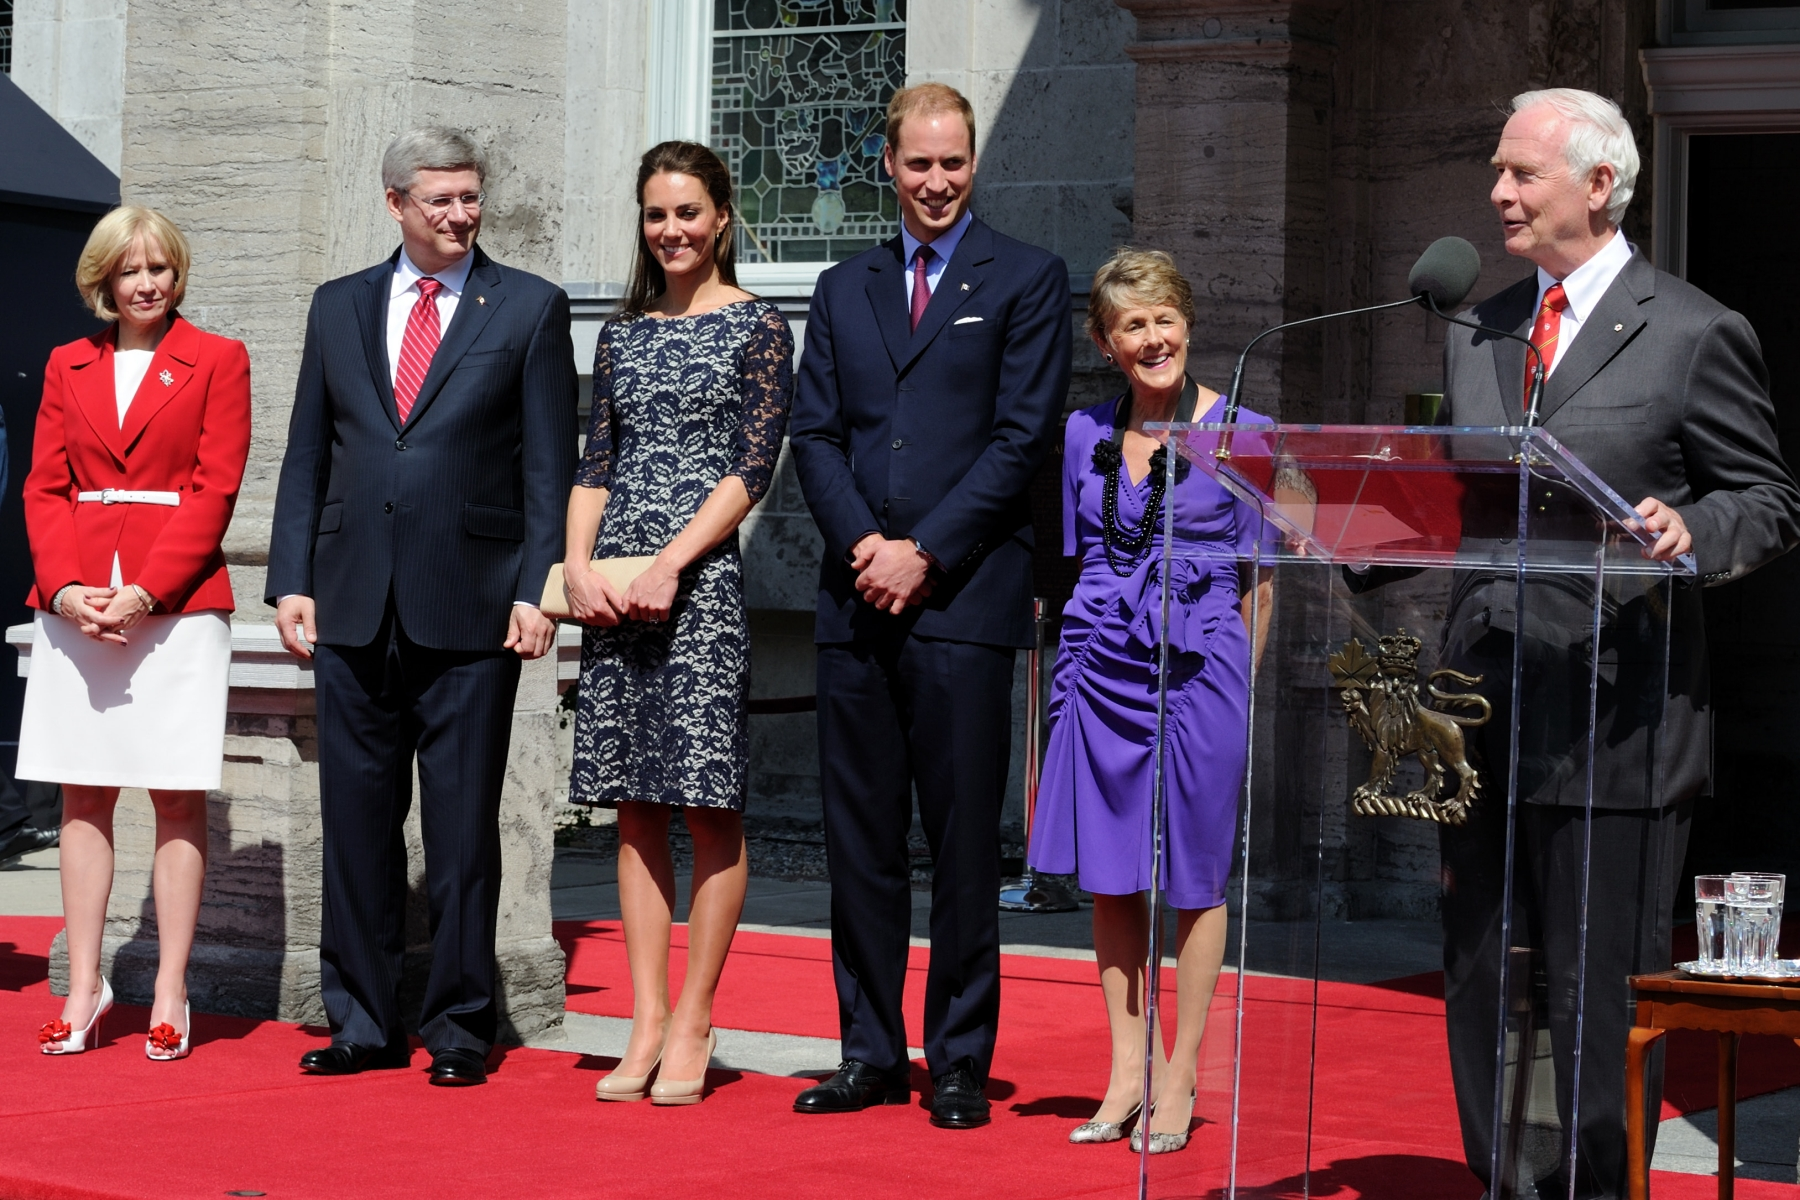 "The Governor General delivered a speech: ""It is a great pleasure for my wife, Sharon, and me to welcome Your Royal Highnesses to Rideau Hall and to Canada. We are delighted to see you again, and to have the opportunity to revisit our memories of your magnificent wedding last spring. It was a privilege to represent all Canadians on that memorable day, and it is an honour to greet you today on your first official tour as a married couple."""